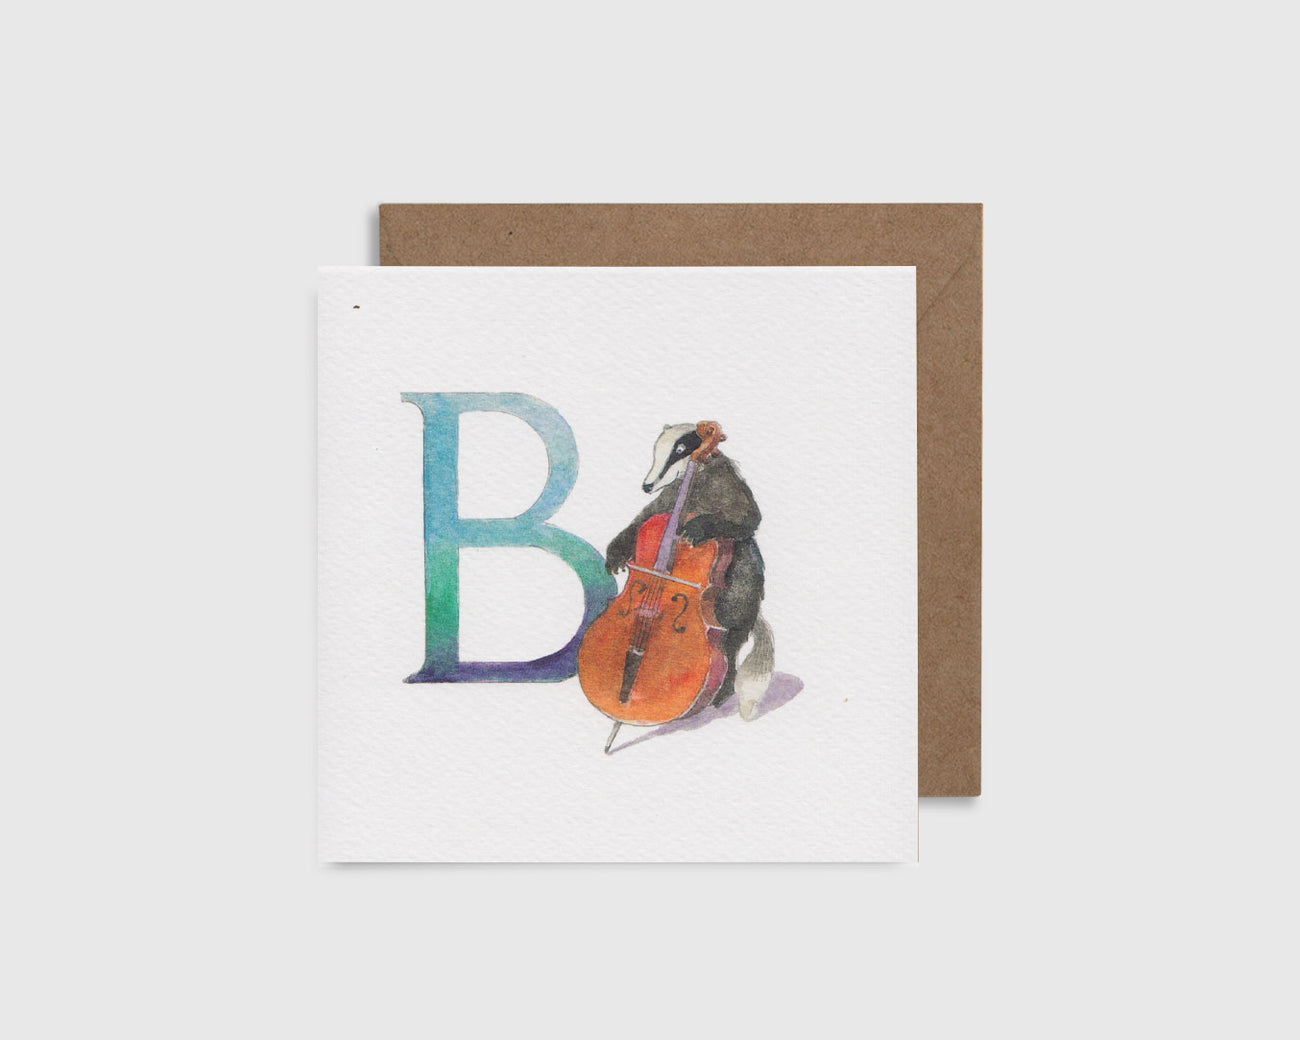 B is for Badger - B comme Blaireau